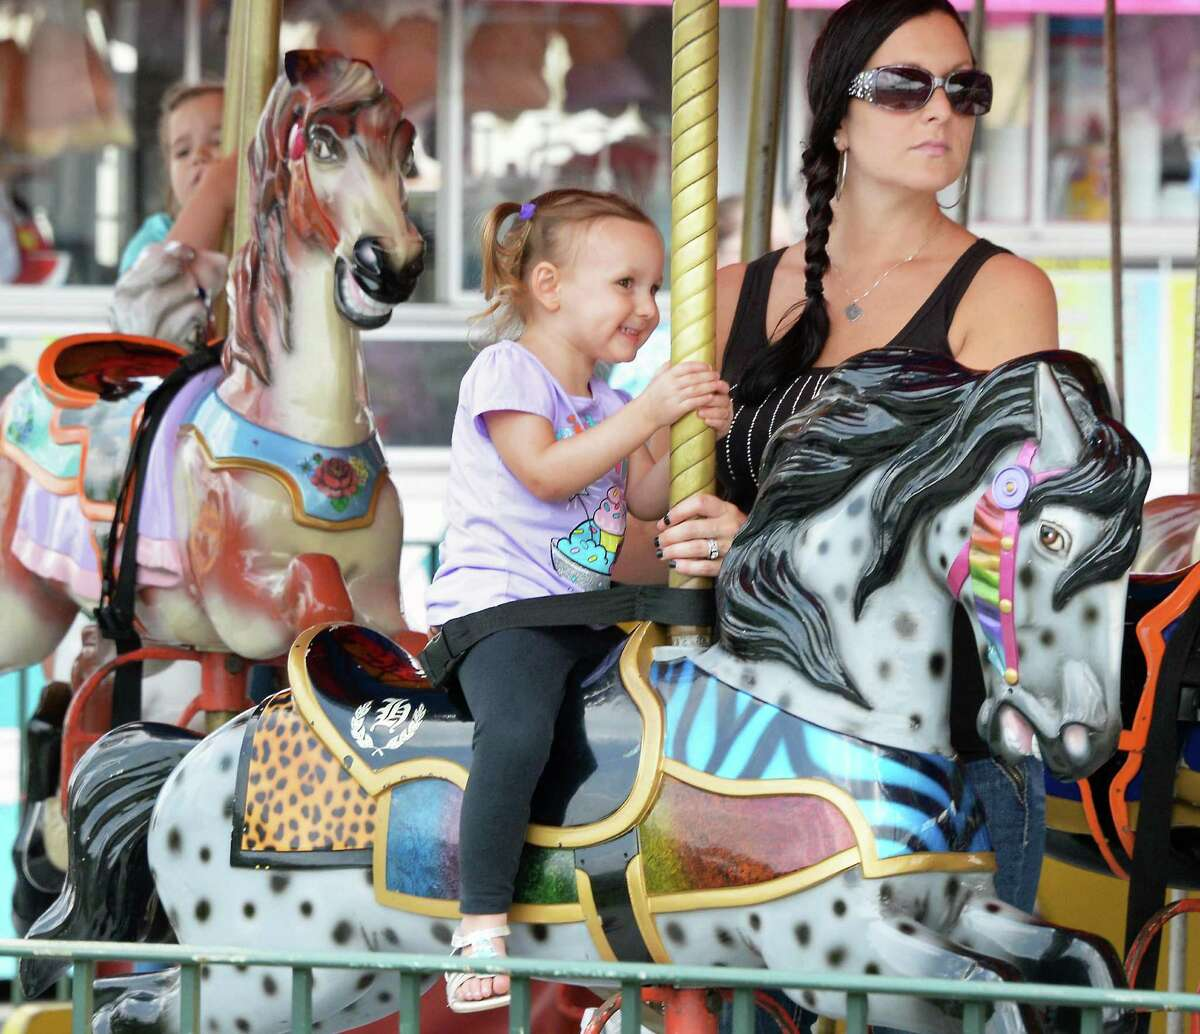 Three-year-old Gabriella Merriman rides the Merry Go Round with her mother Nicole Merriman of Rotterdam at the Grand opening of Huck Finn's Playland Wednesday July 1, 2015, Albany, NY. (John Carl D'Annibale / Times Union)